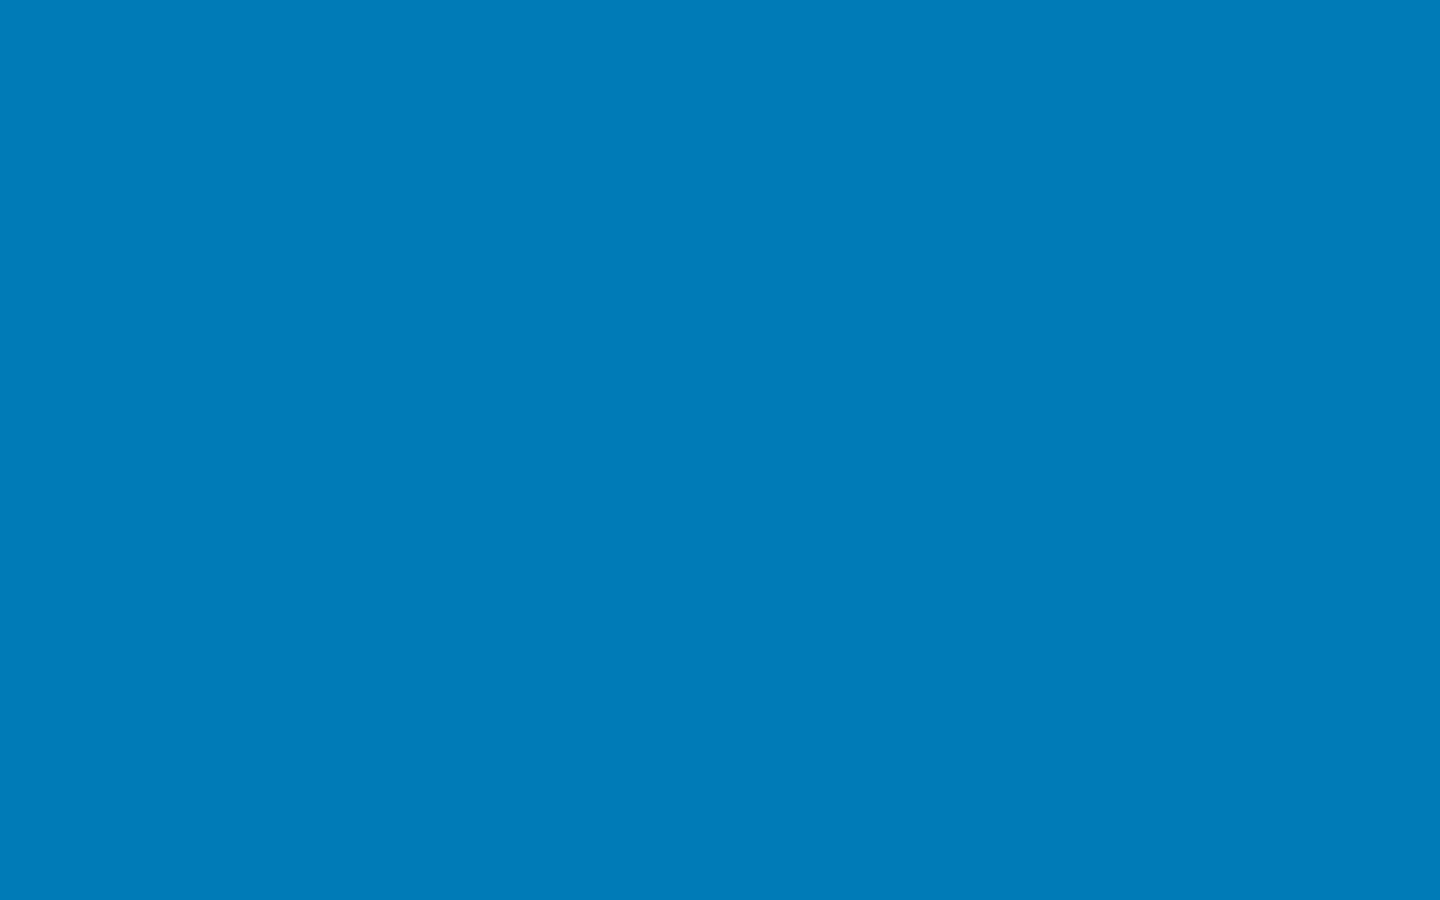 1440x900 Star Command Blue Solid Color Background